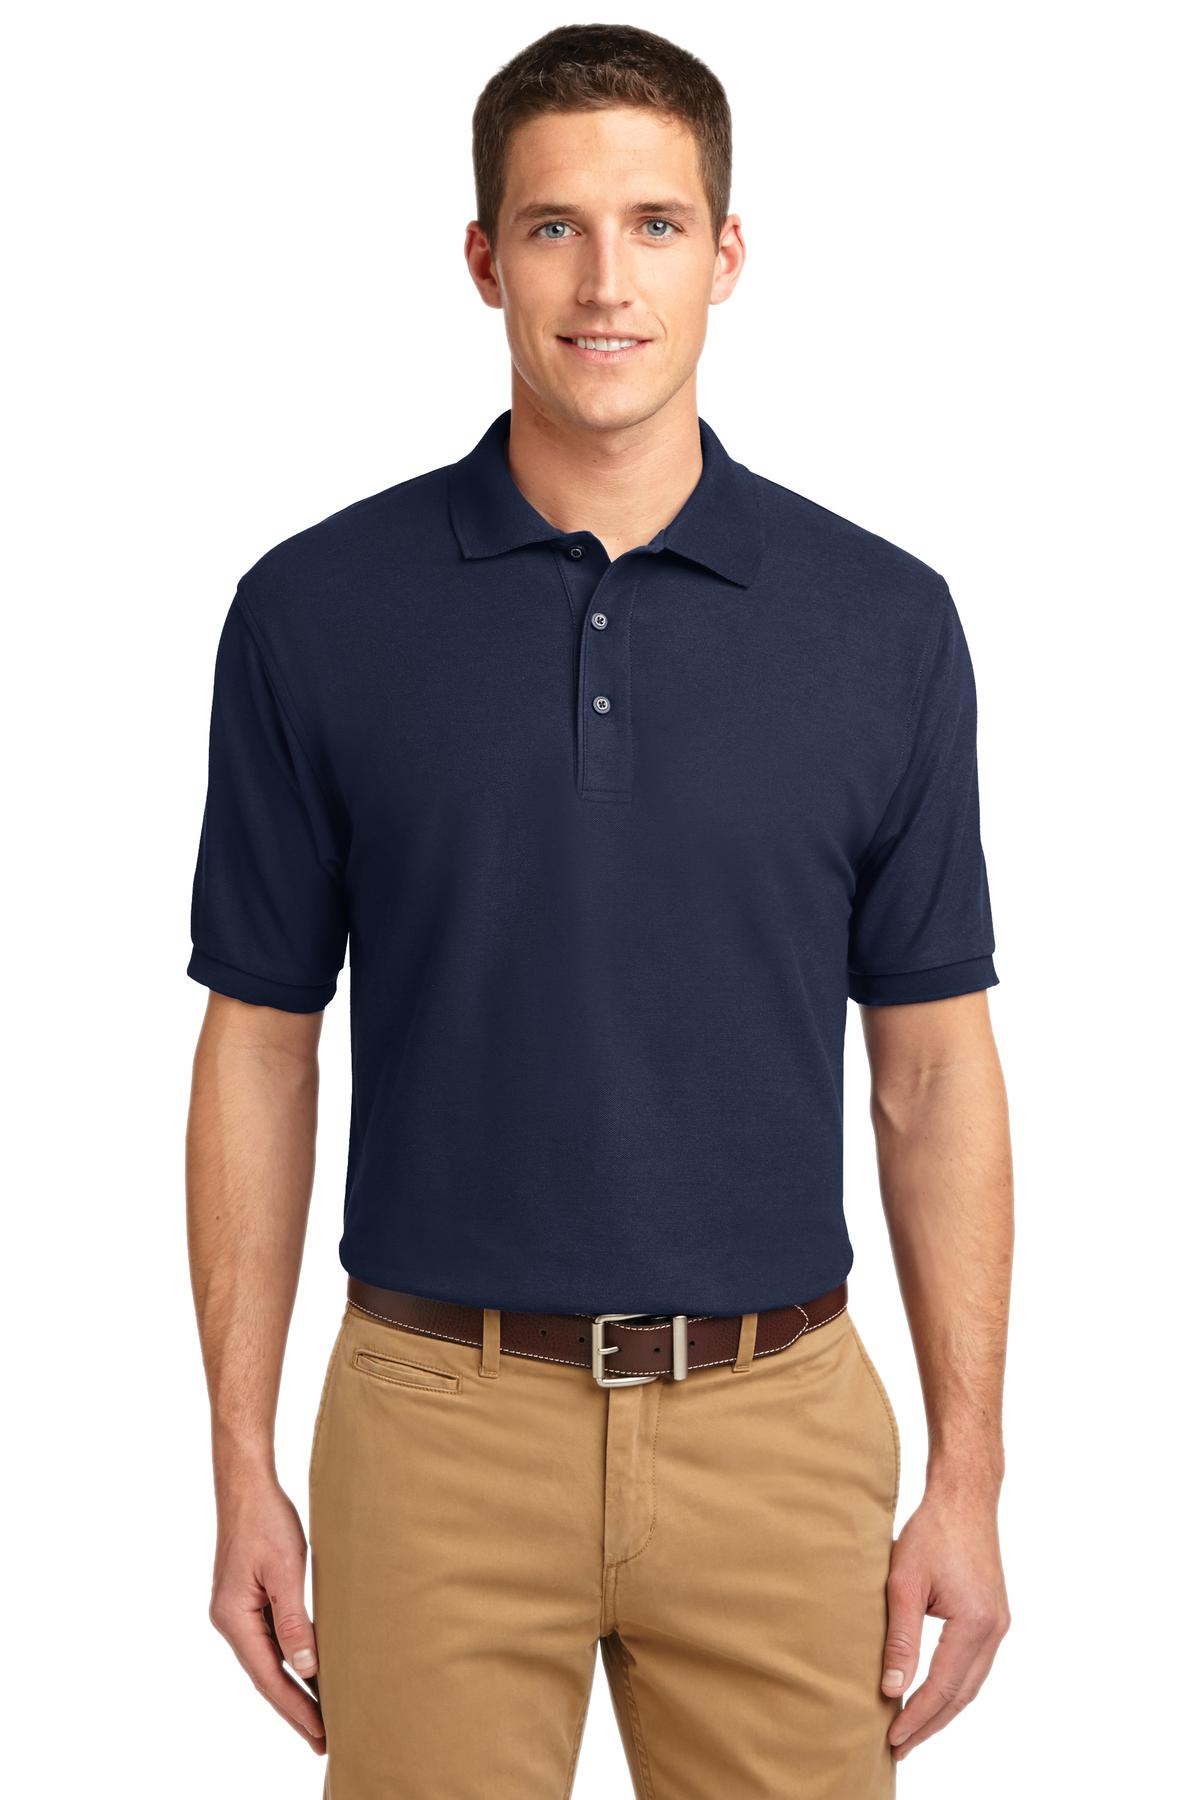 Navy Port Authority Silk Touch Polo.